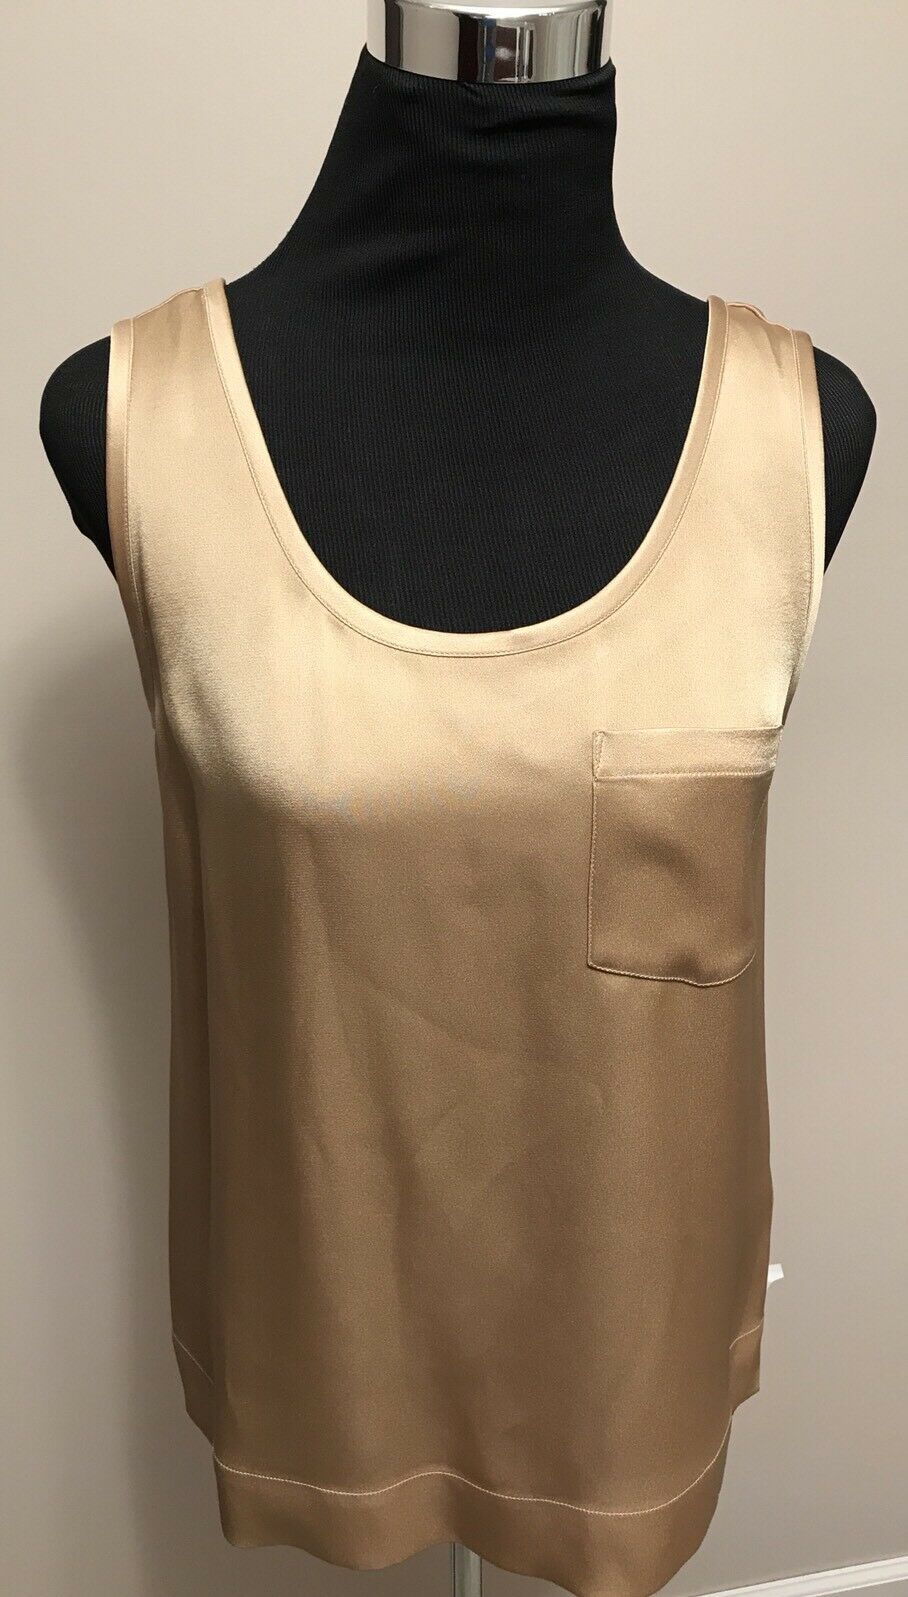 650 NWT Ralph Lauren lila Label January Canyon Gold Sleeveless Top sz 6